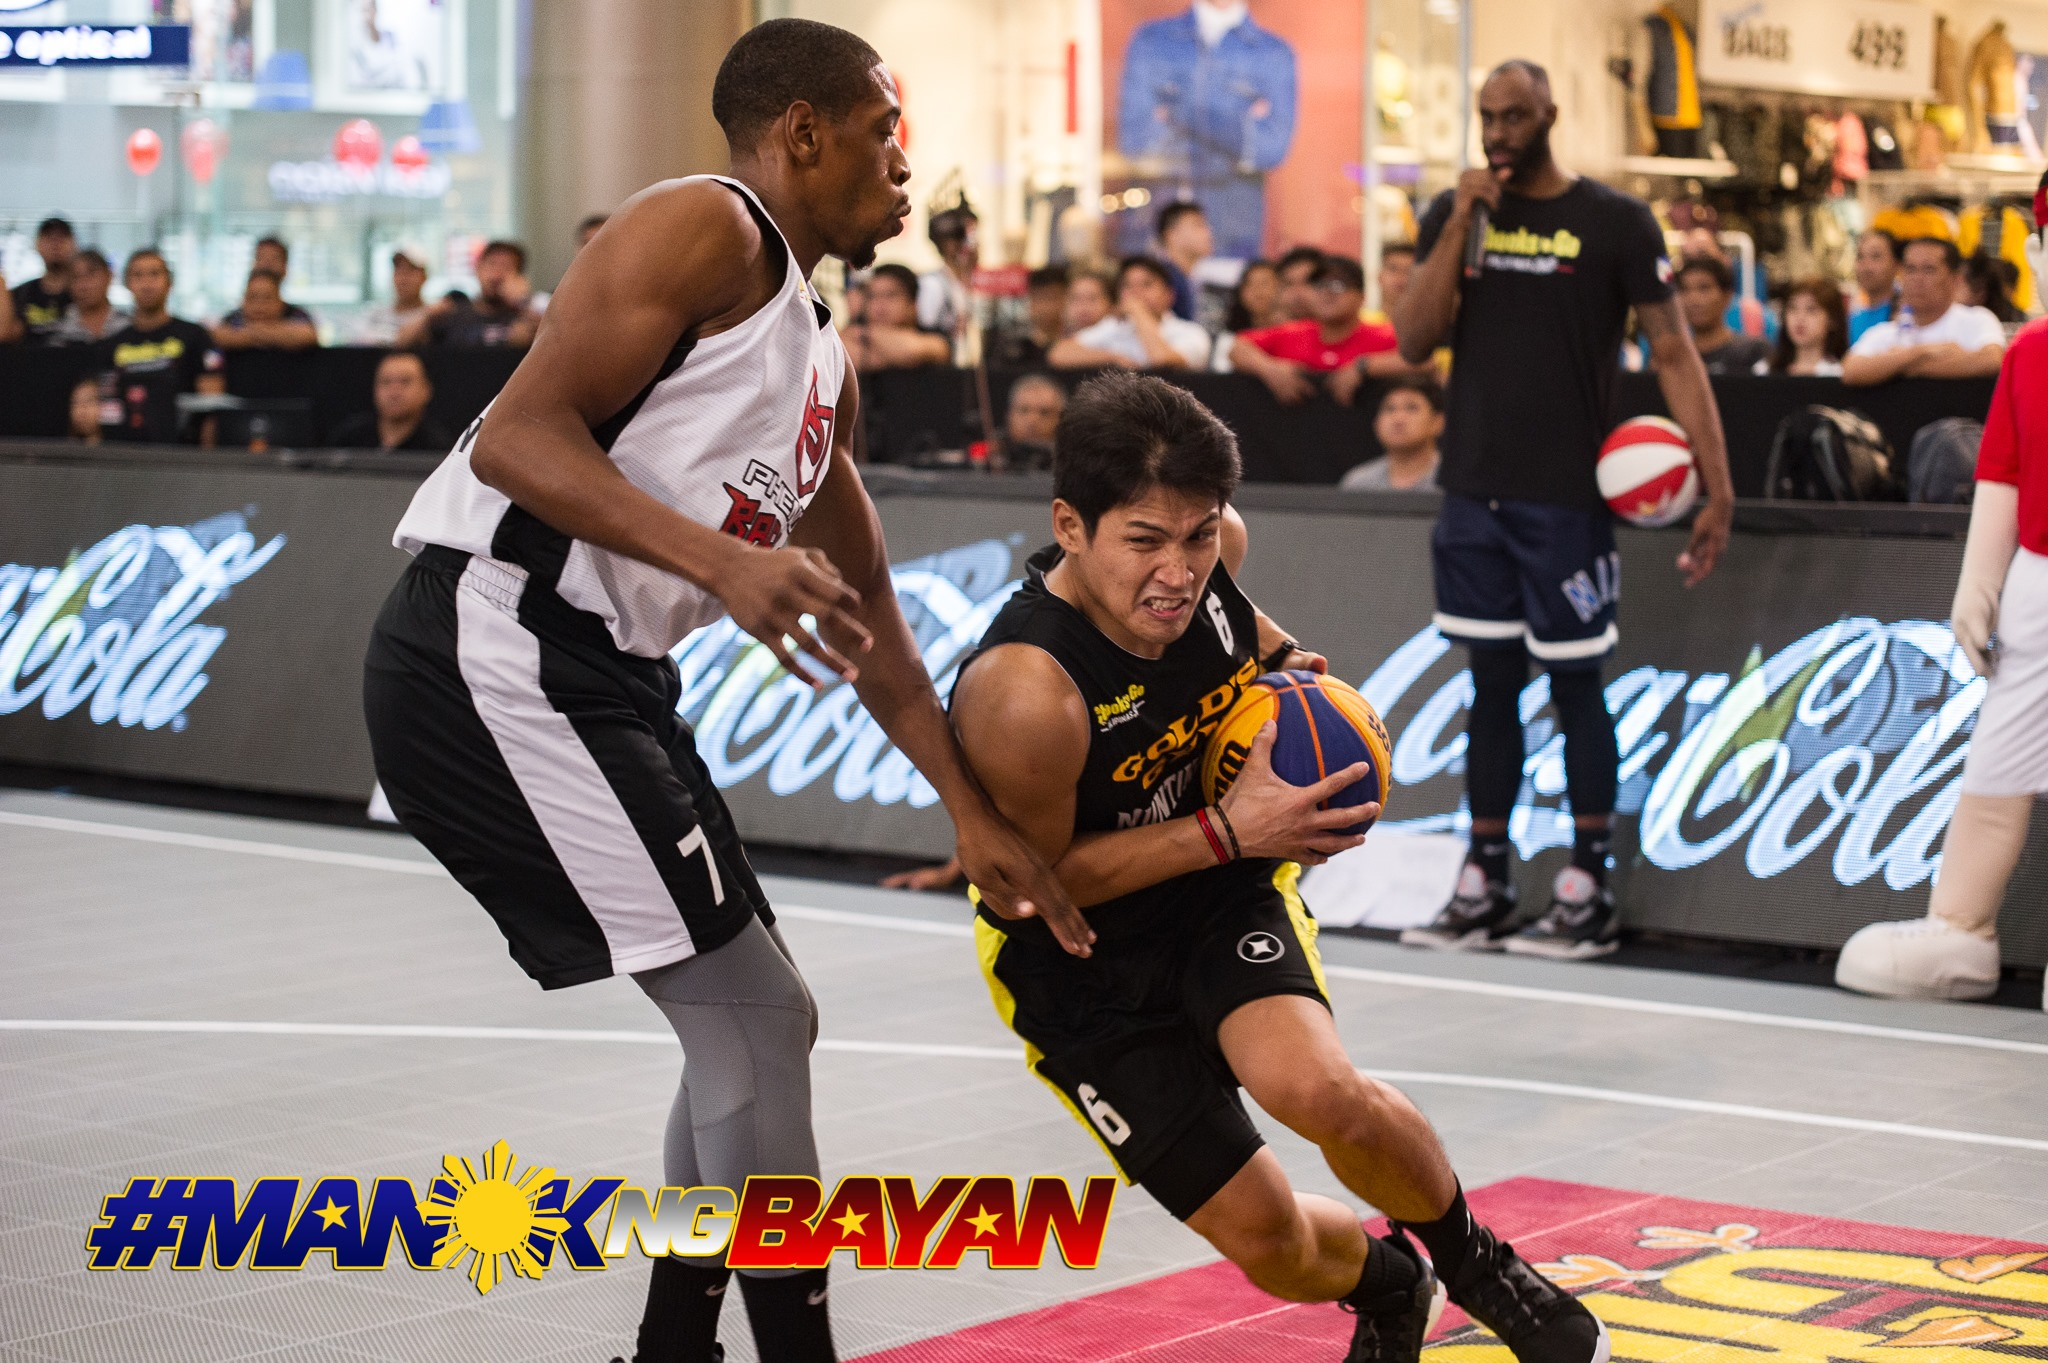 Tiebreaker Times David Carlos shows he could play 3x3 as well 3x3 Basketball Chooks-to-Go Pilipinas 3x3 News  Gold's Gym-Muntinlupa David Carlos 2019 Chooks-to-Go Pilipinas 3x3 Season 2019 Chooks-to-Go Pilipinas 3x3 Patriots Cup